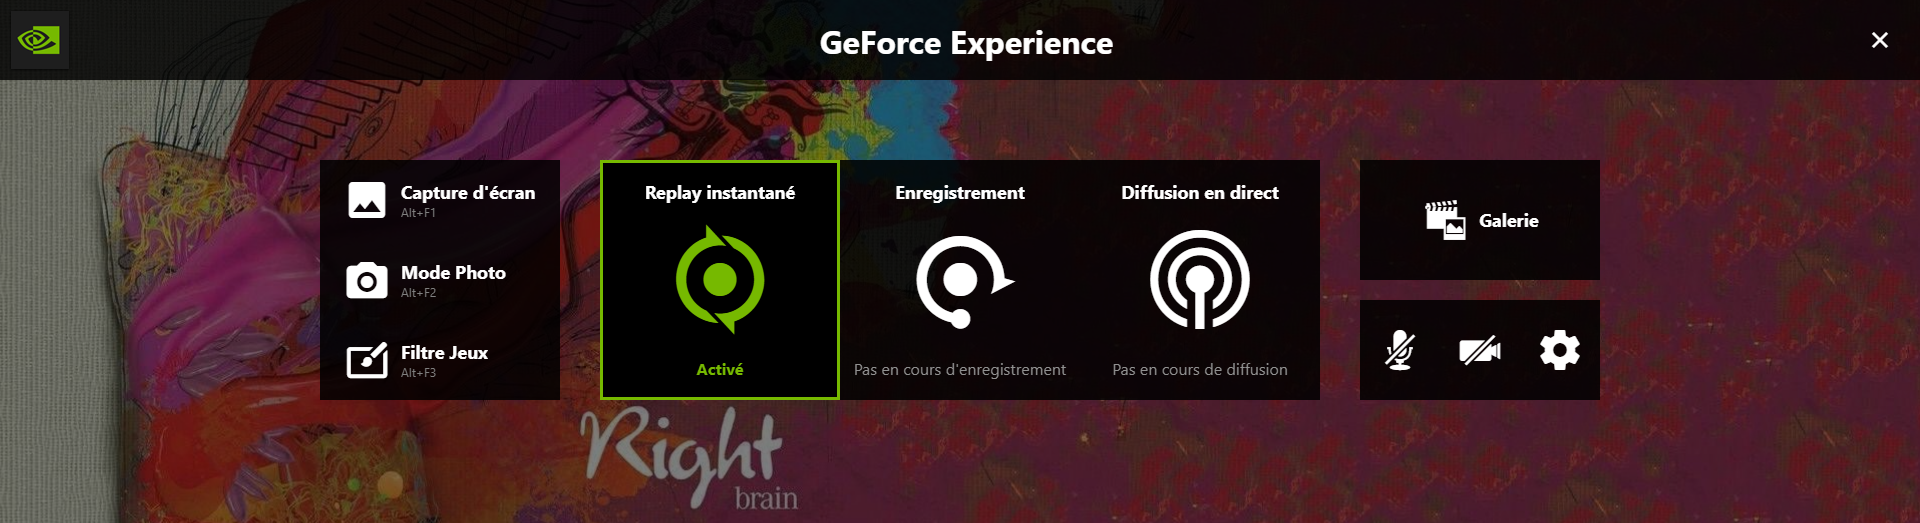 Interface de ShadowPlay / GeForce Experience